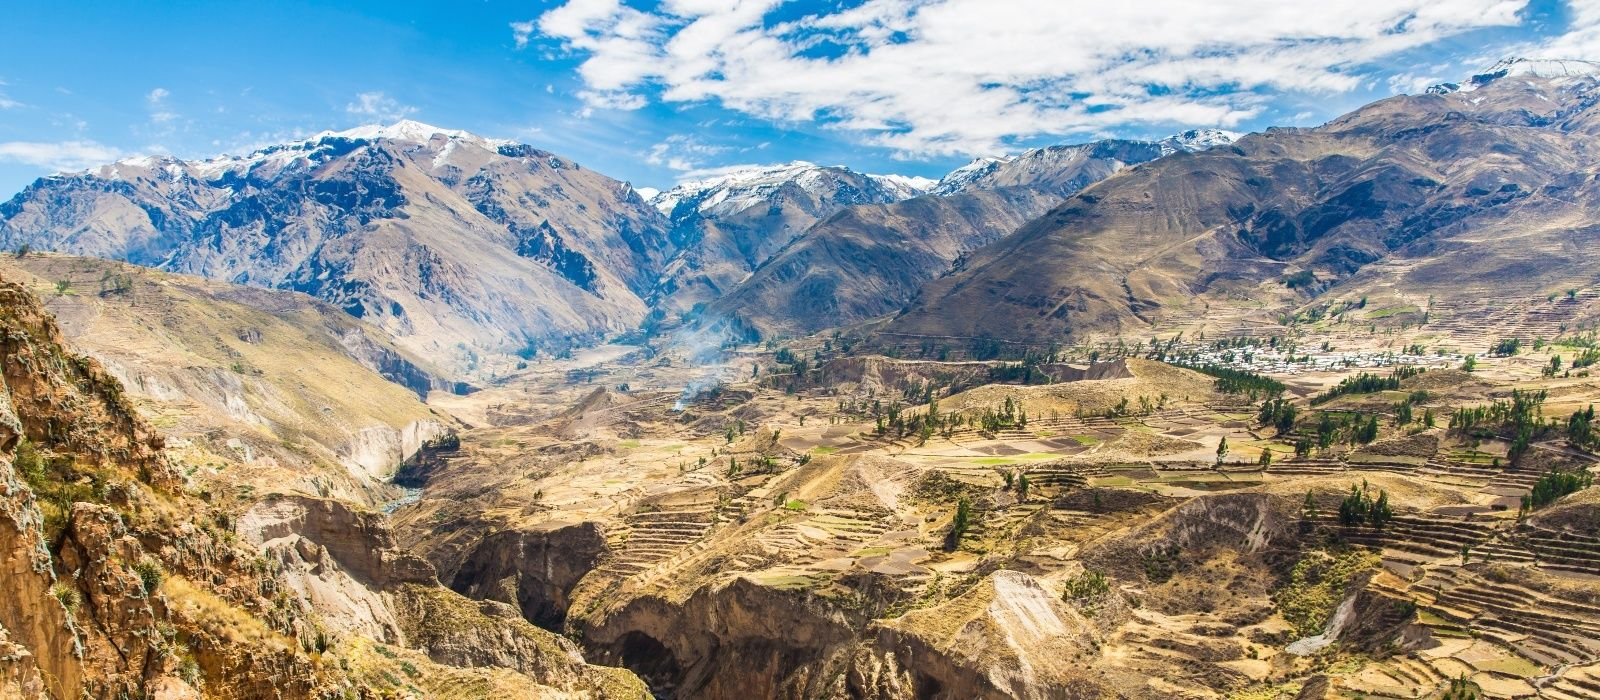 Destination Colca Peru